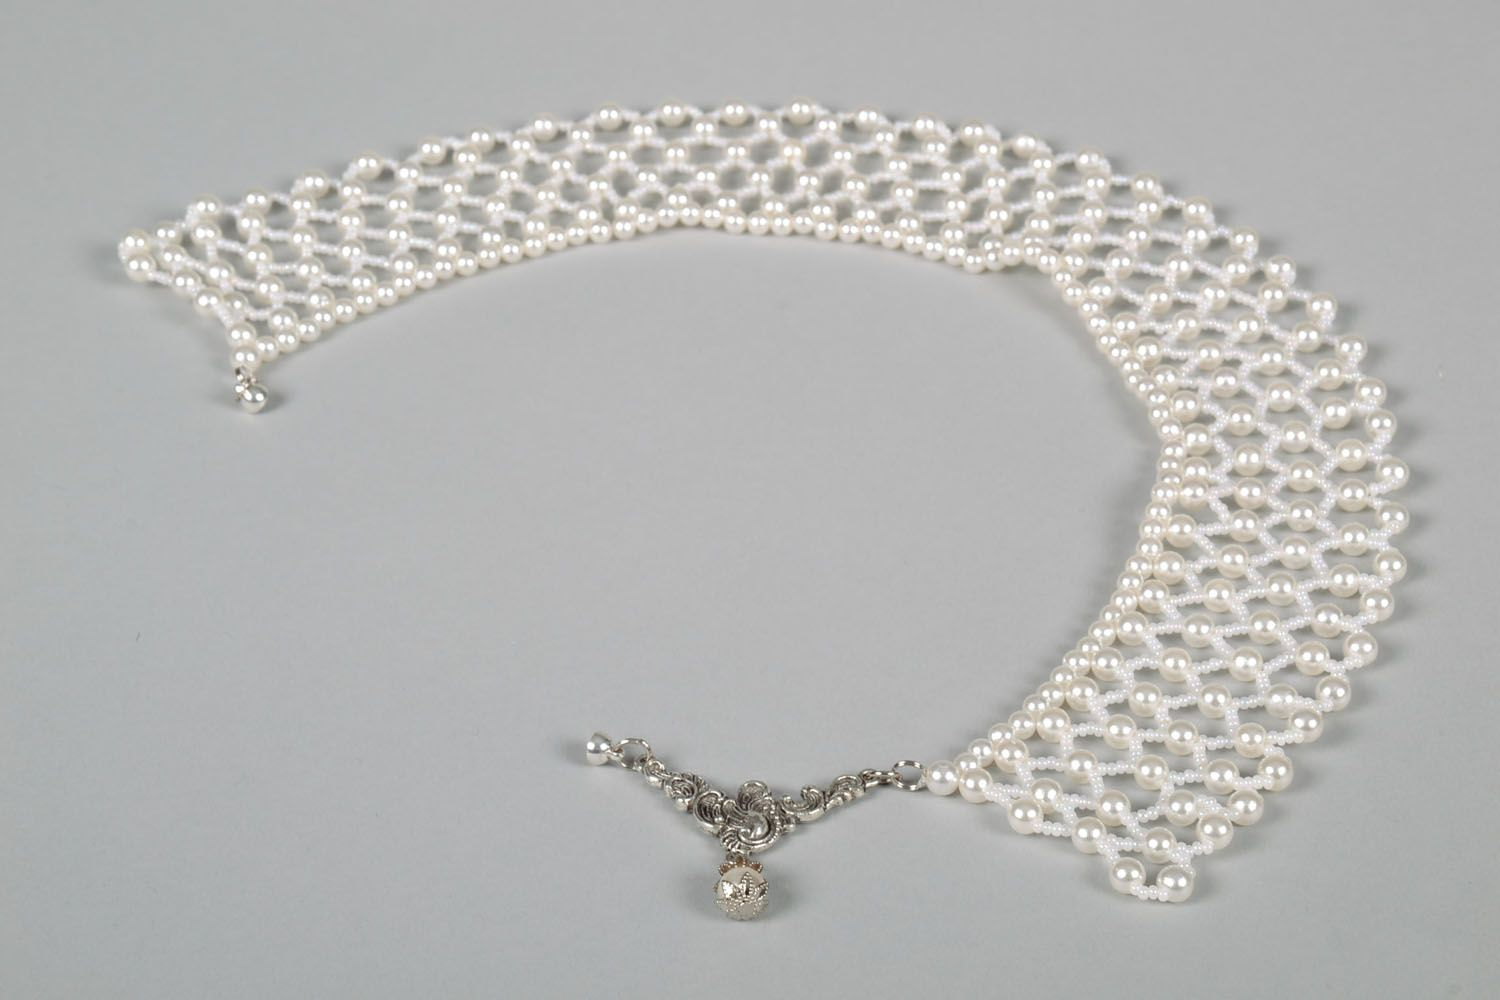 Lacy necklace made of white beads photo 3